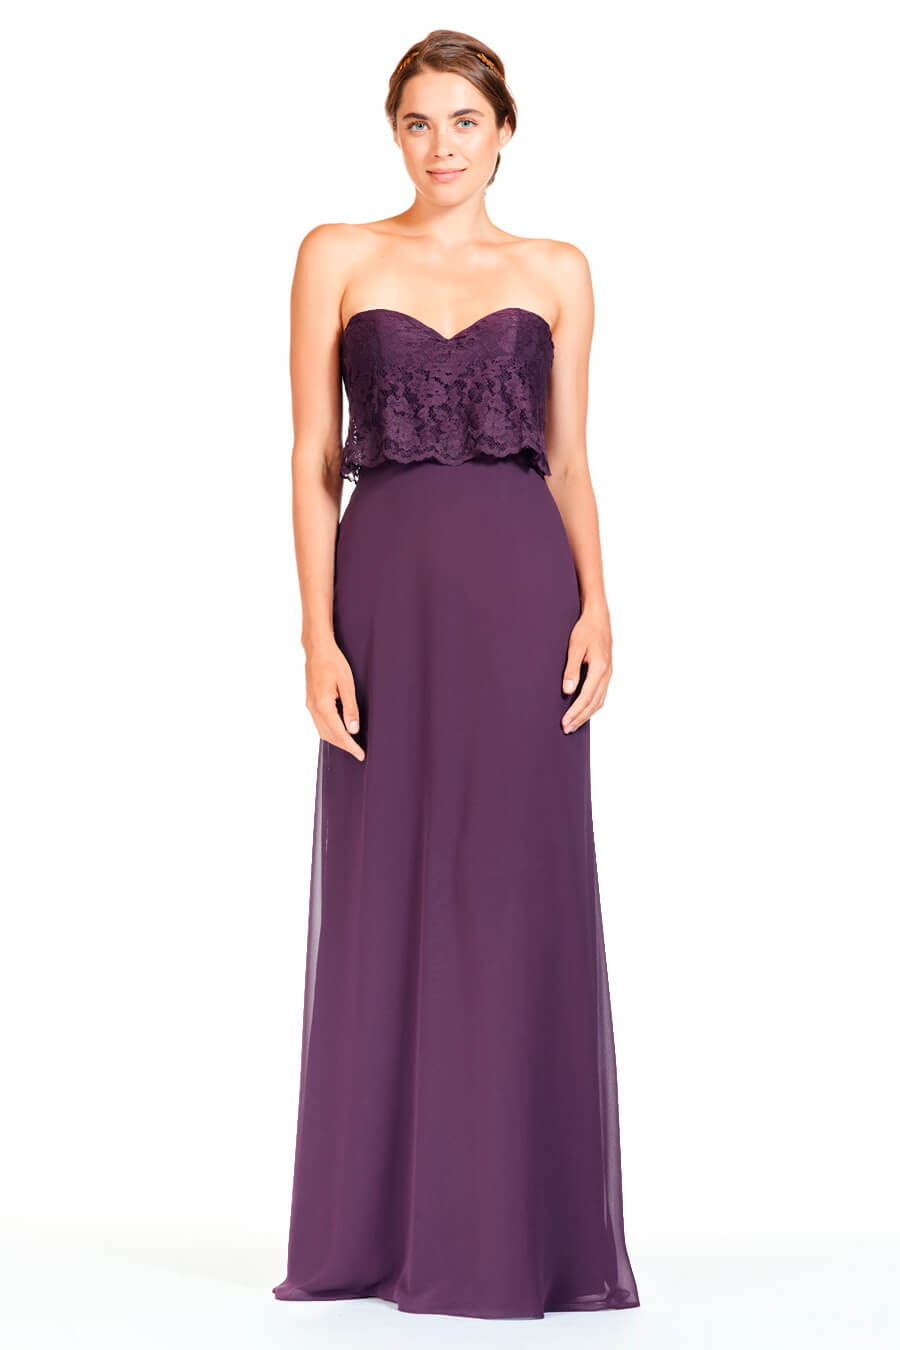 STYLE: 1819 (available short 1819-s) | Bridesmaid Dresses, Evening ...